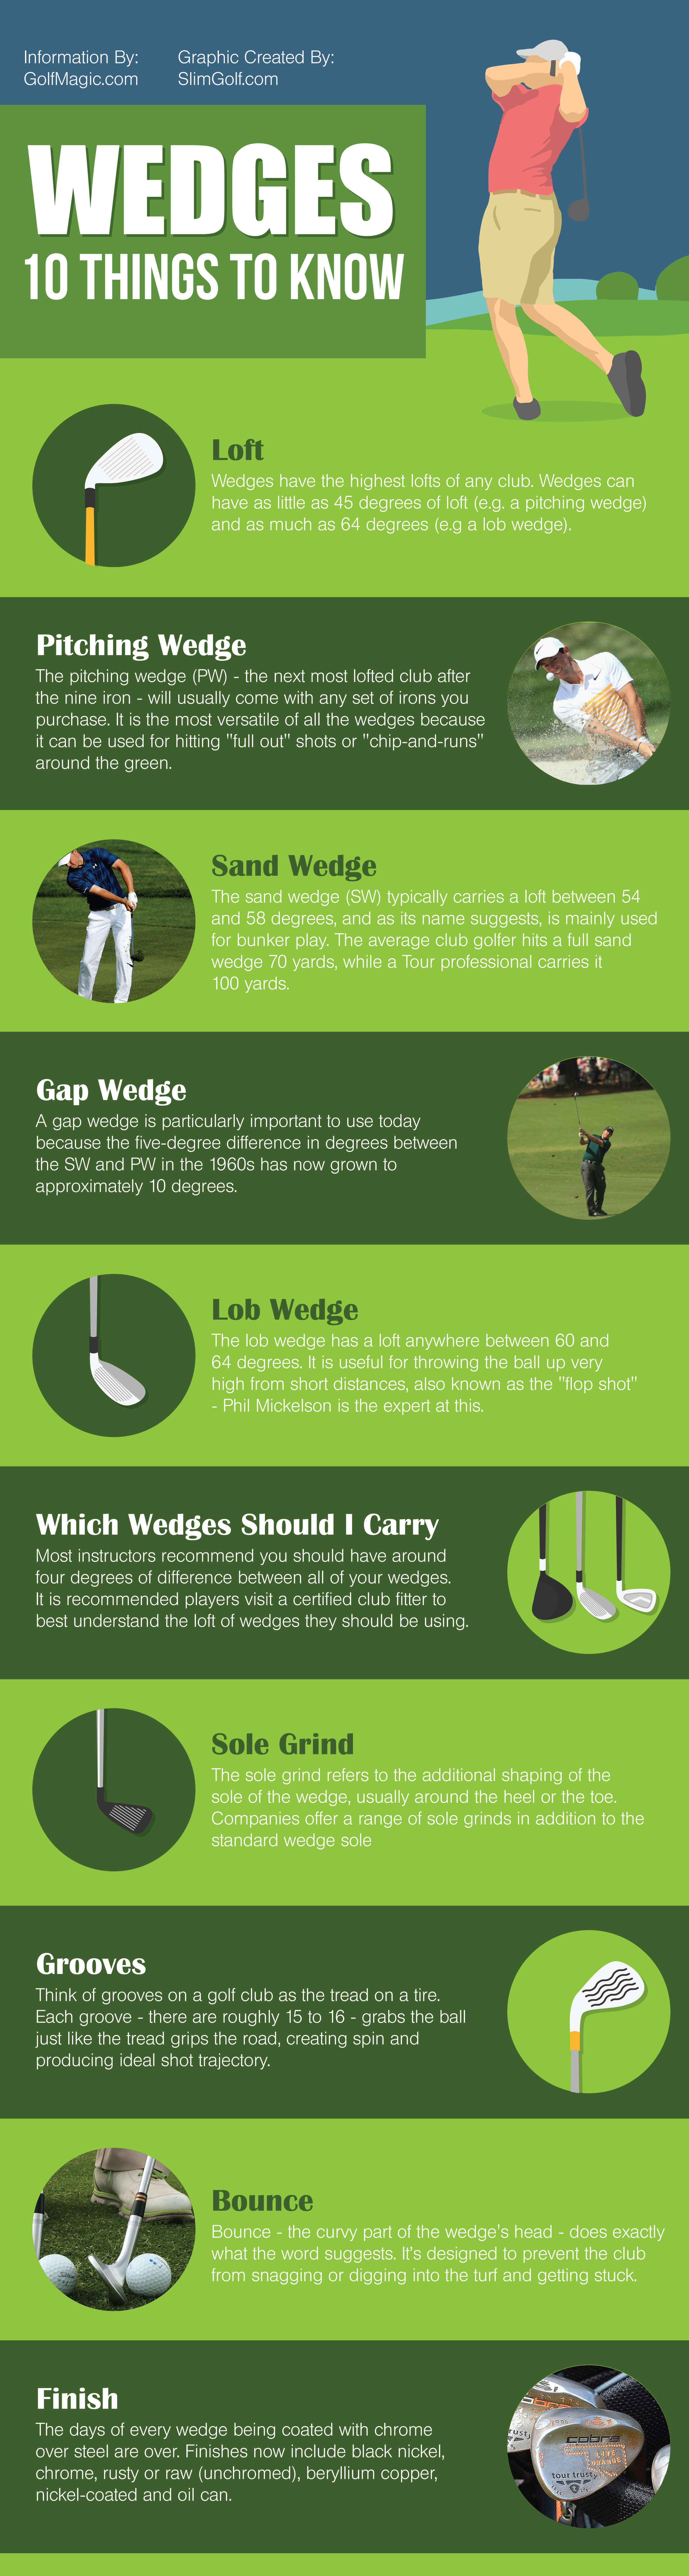 Wedges: 10 things you need to know